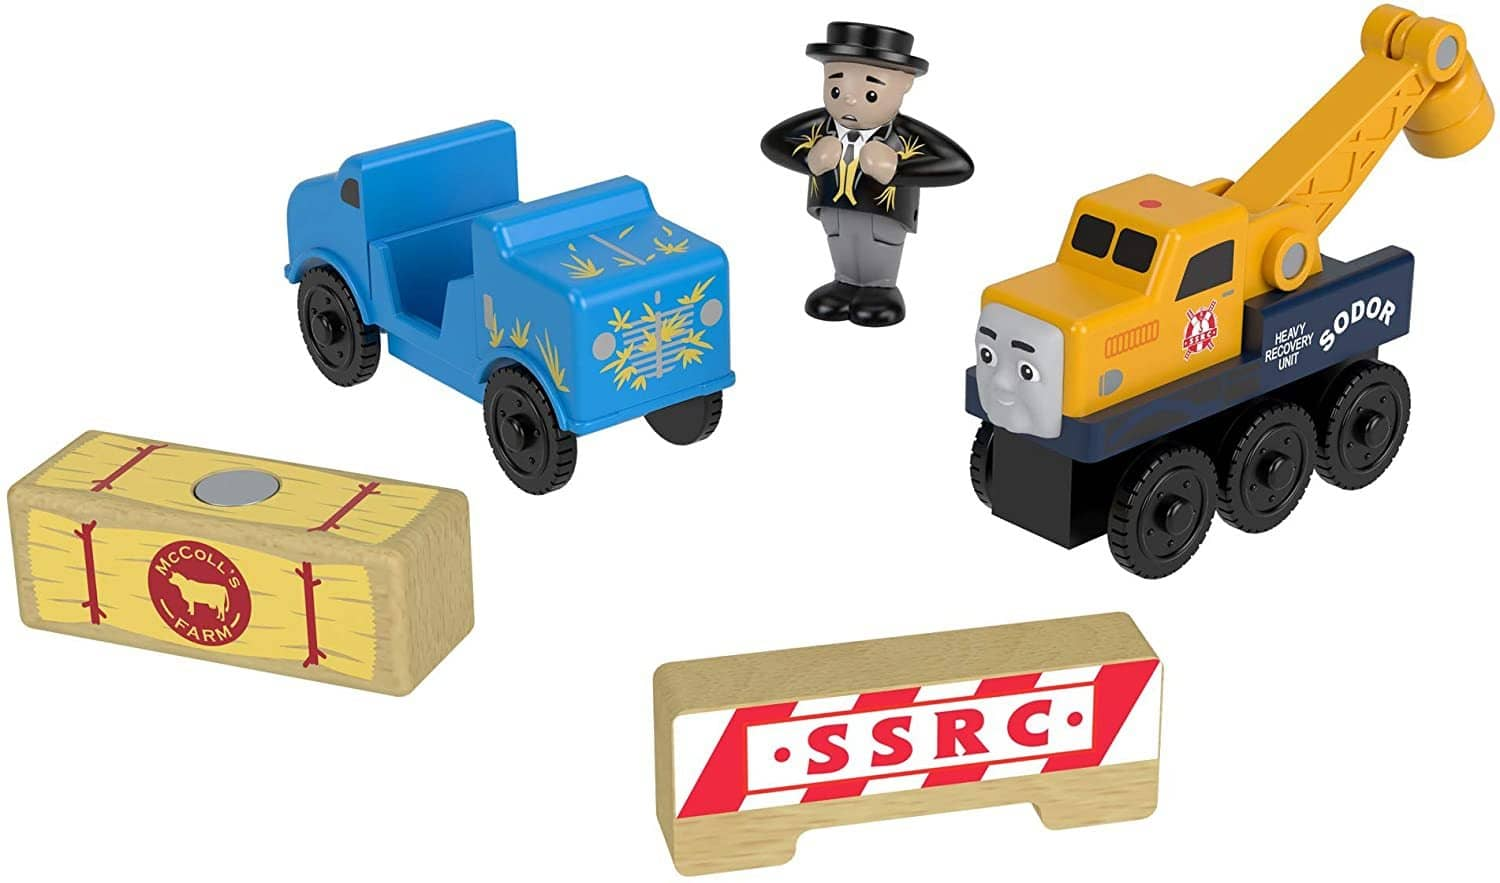 Thomas & Friends Wooden Railway: Butch's Road Rescue-Kidding Around NYC